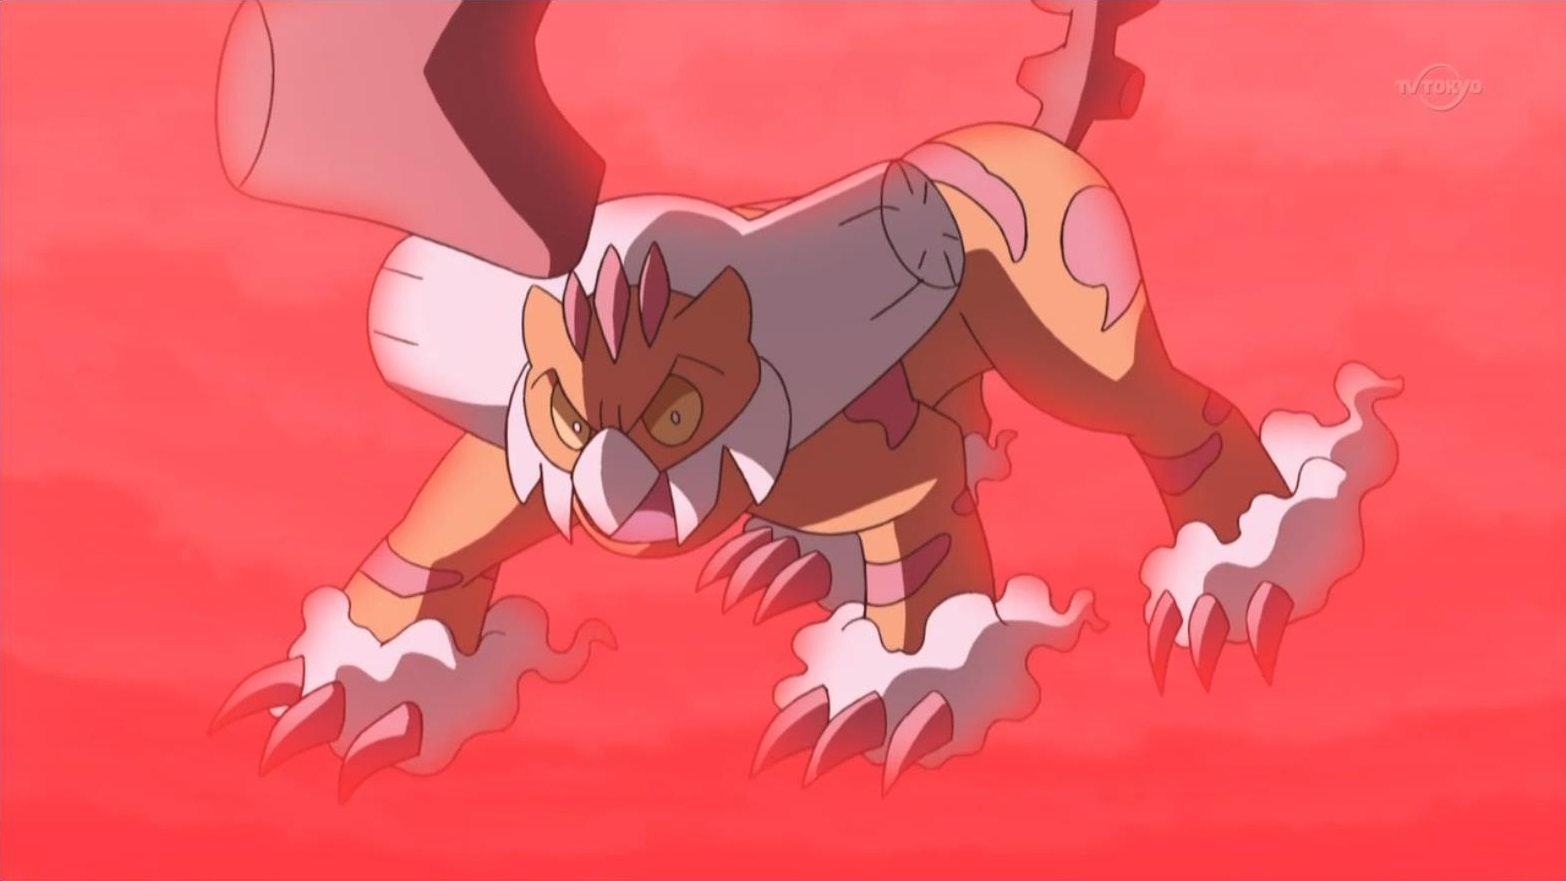 Giovanni (anime) | Pokémon Wiki | FANDOM powered by Wikia A Wild Pokemon Appears